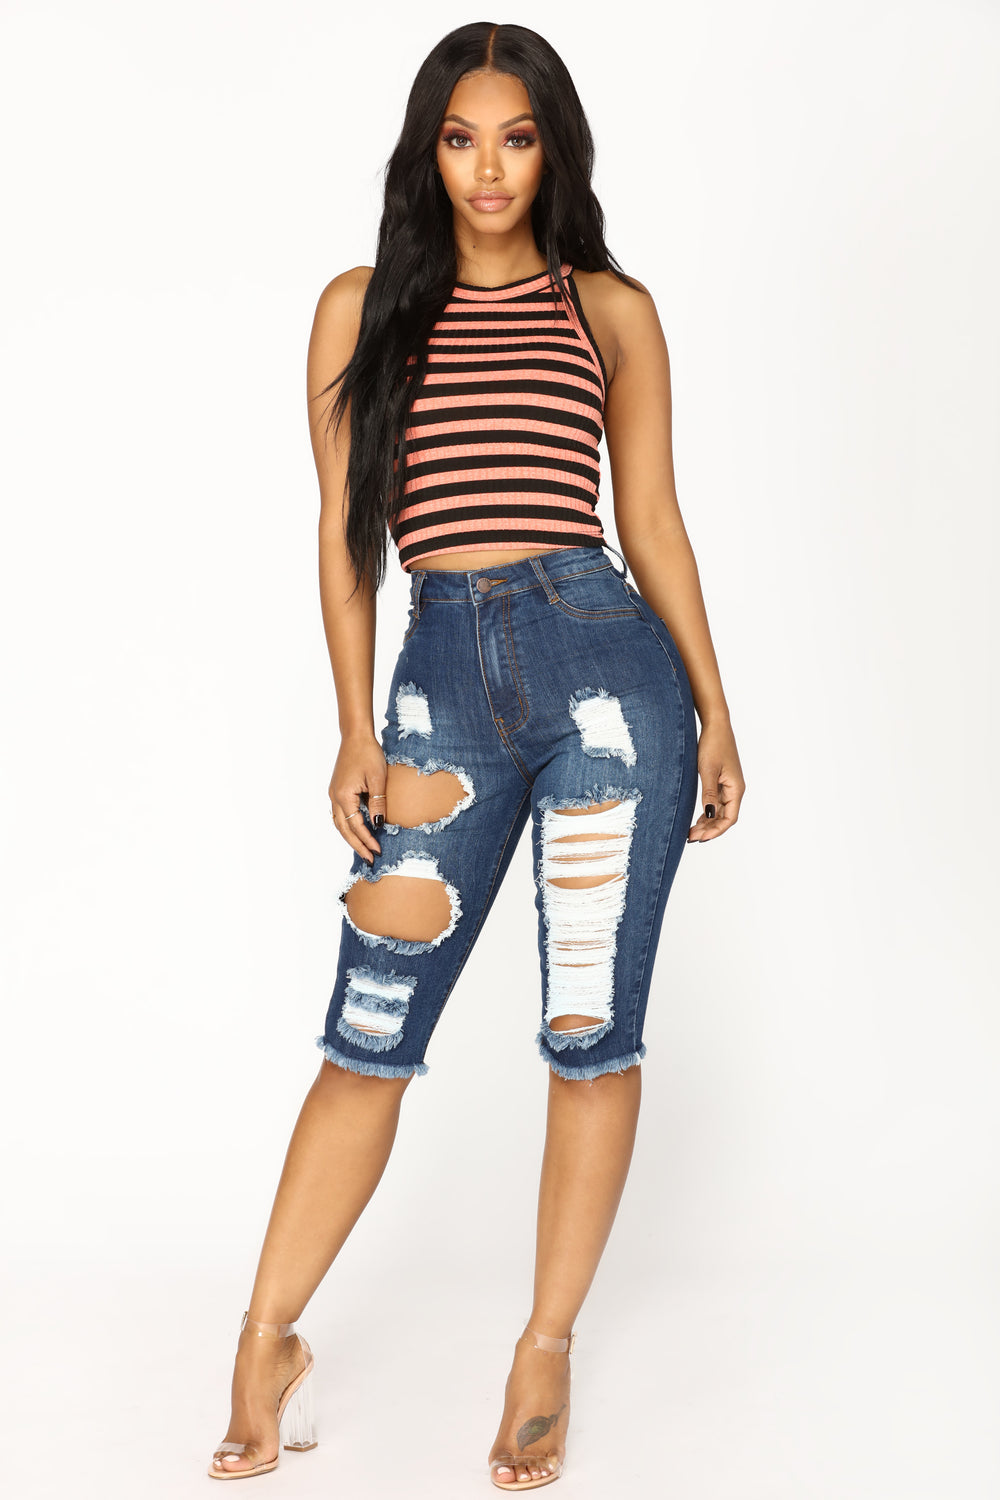 Dress You Up Striped Crop Top - Pink/Black